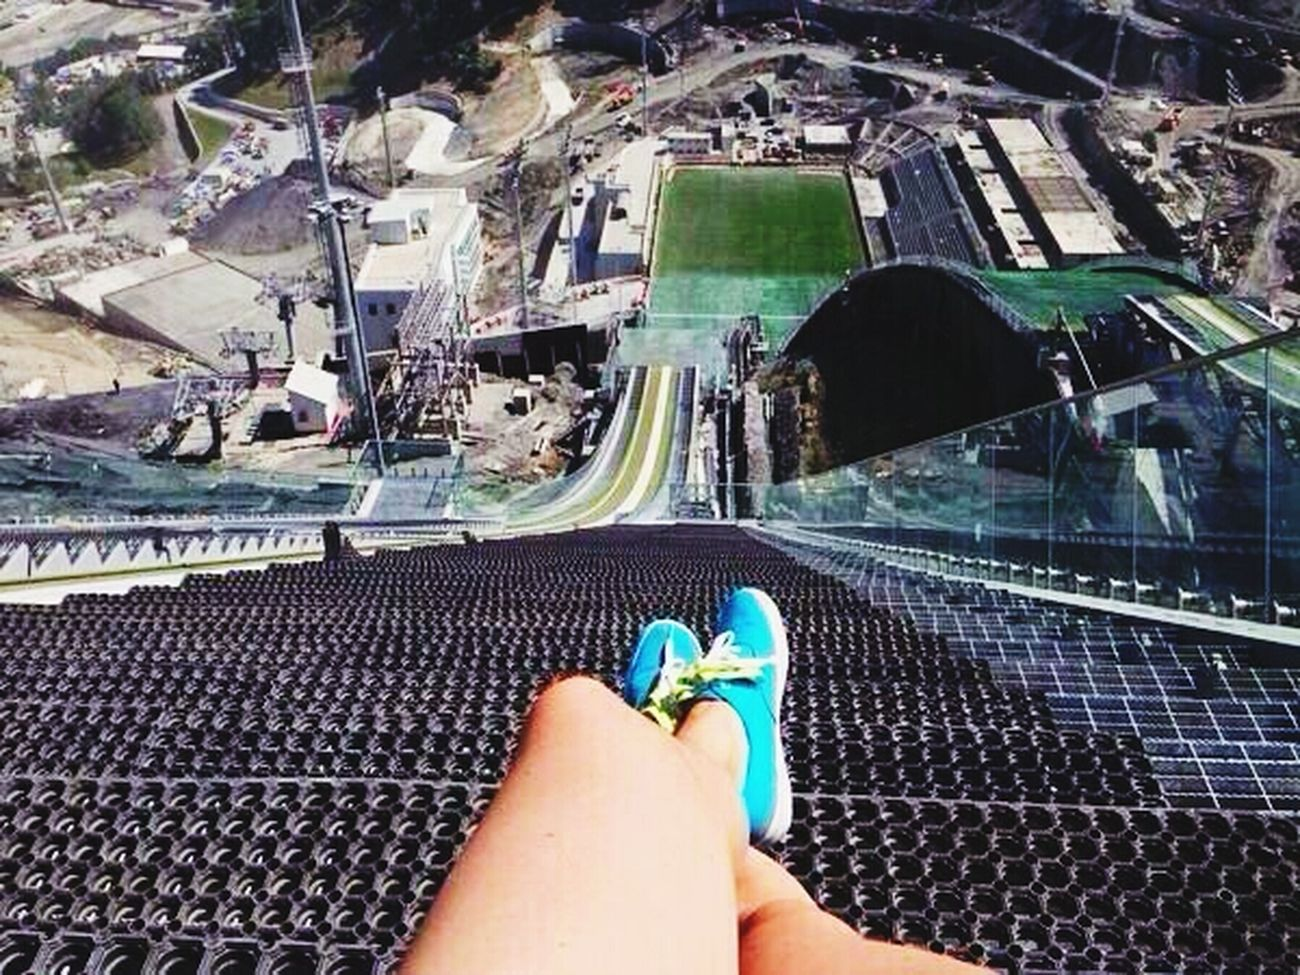 Travelling Relaxing Olympic Taking Photos View From The Top Of The Olympic Ski In Sochi, Russia